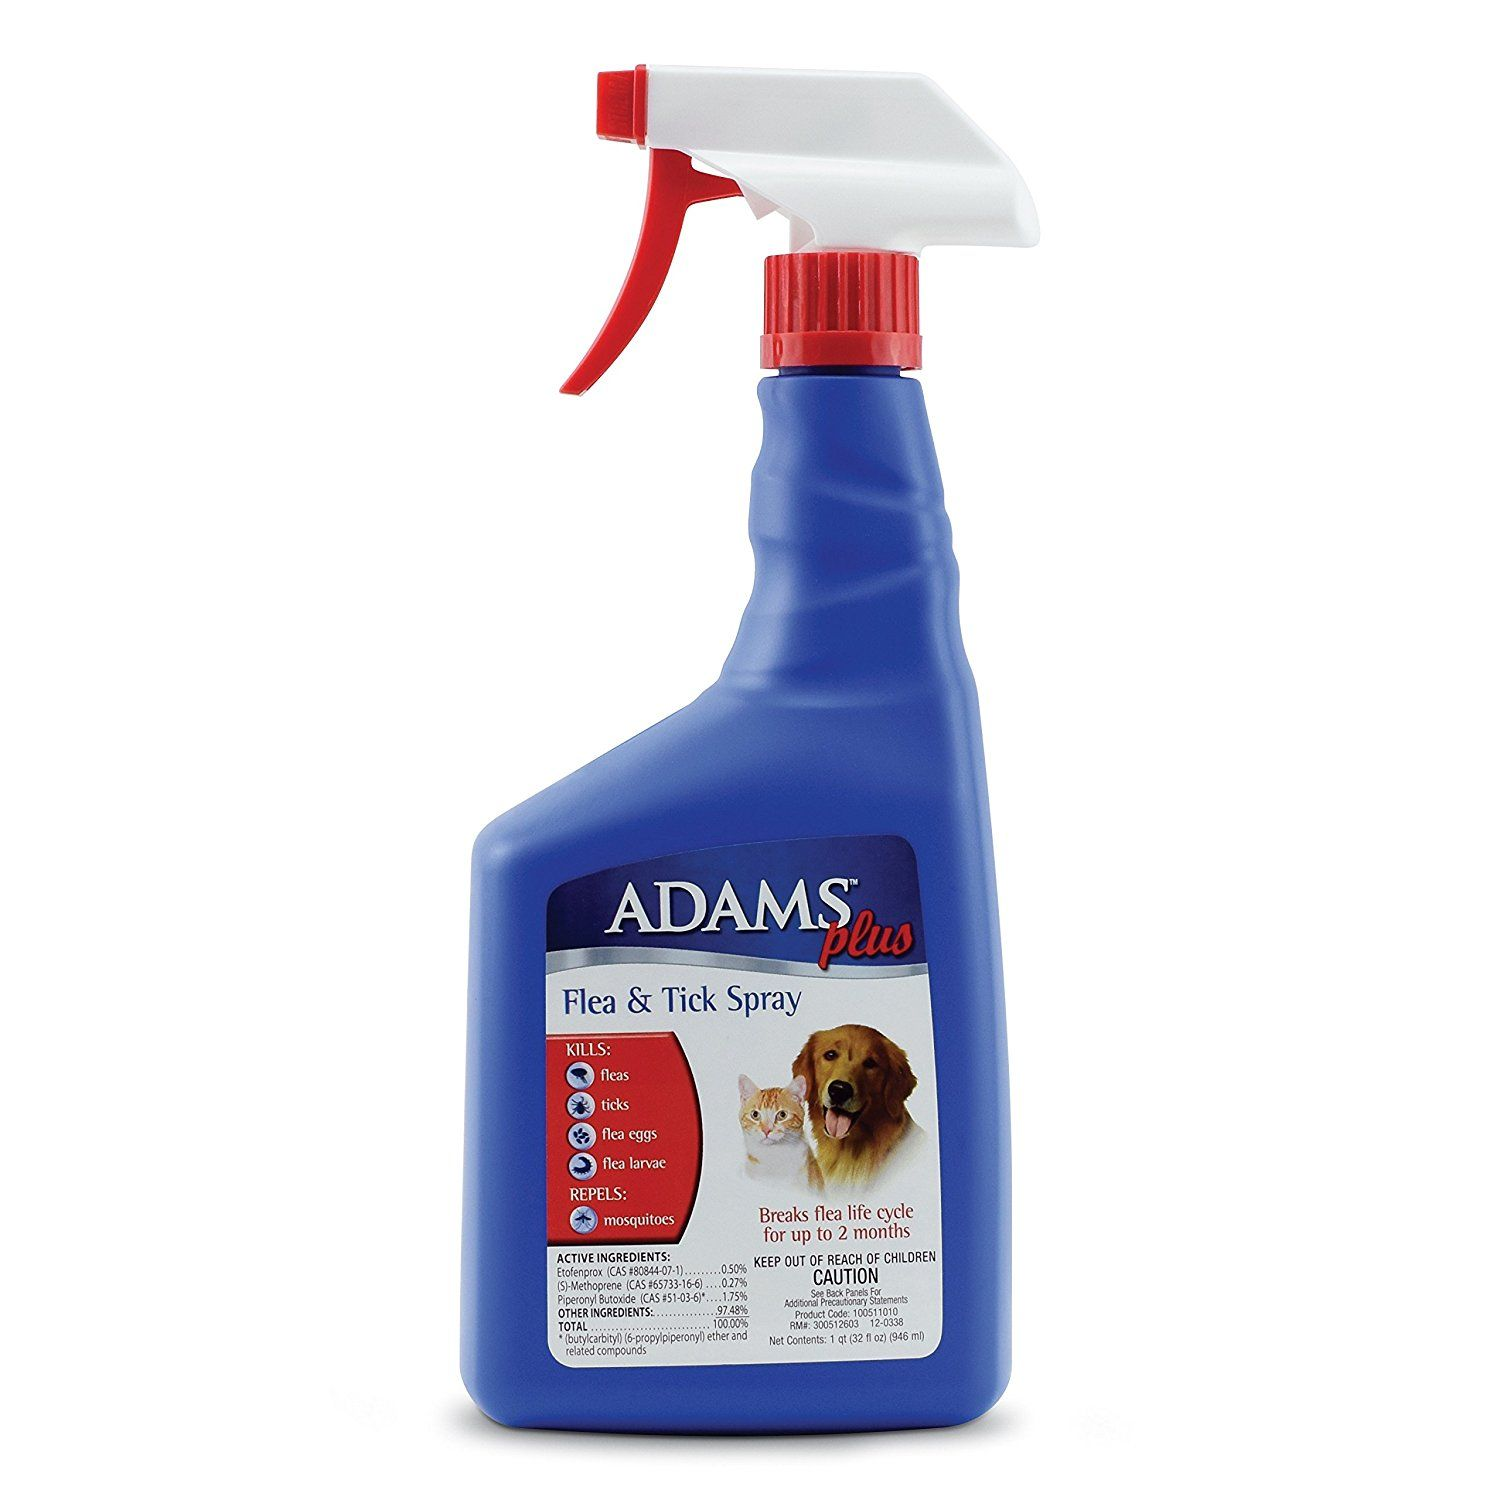 Adams Plus Flea and Tick Spray for Cats and Dogs Click